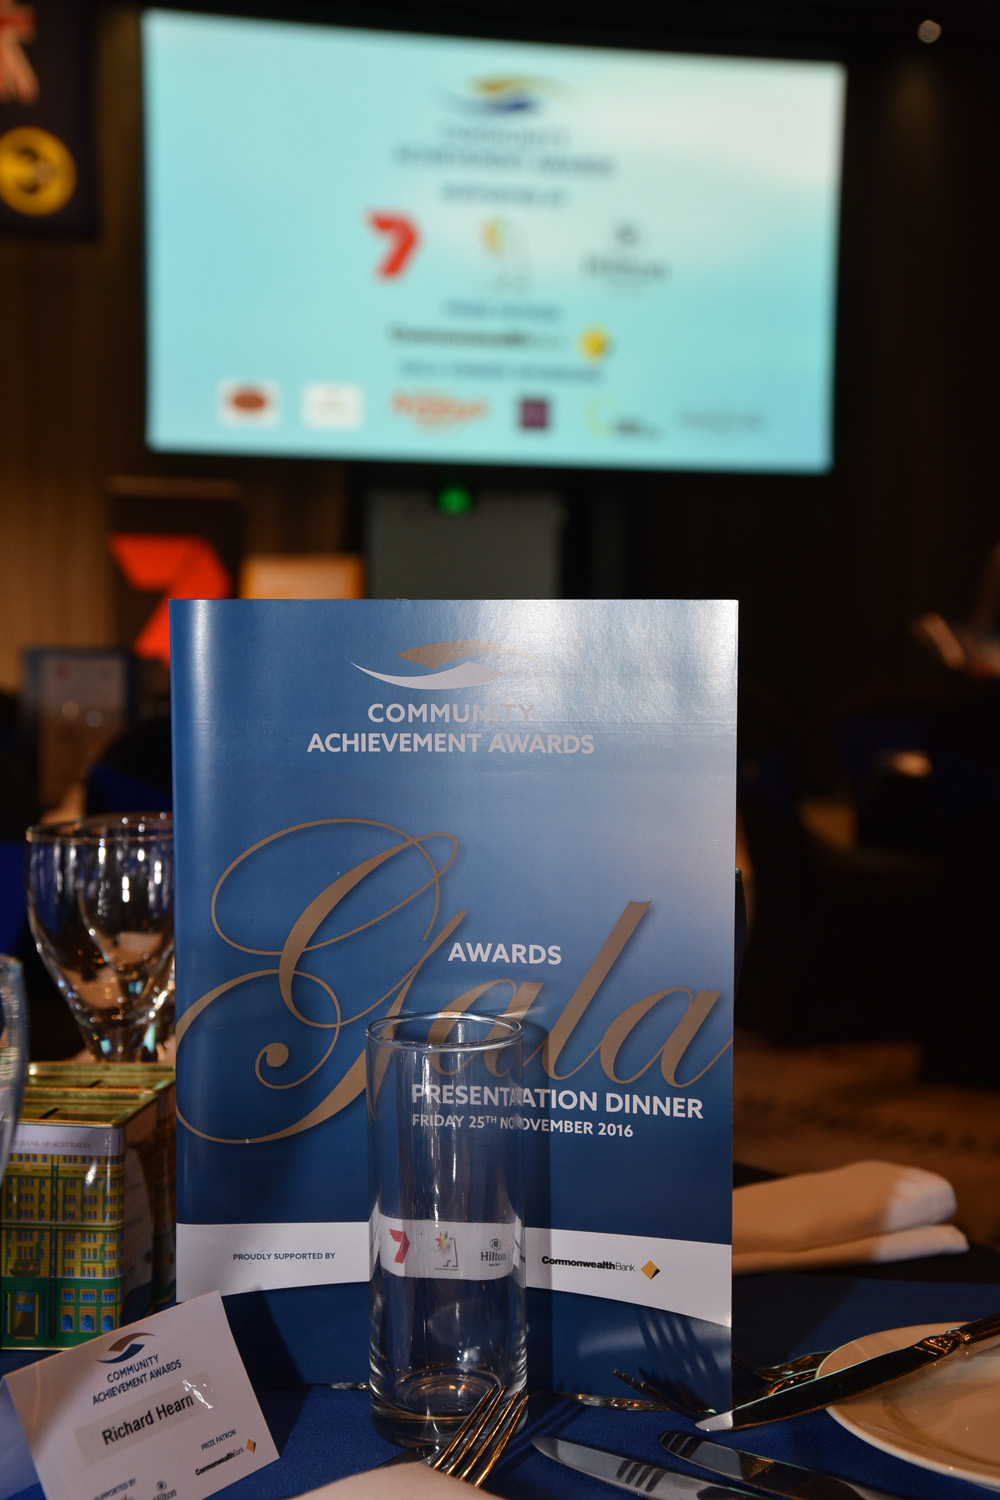 South Australian Community Achievement Awards